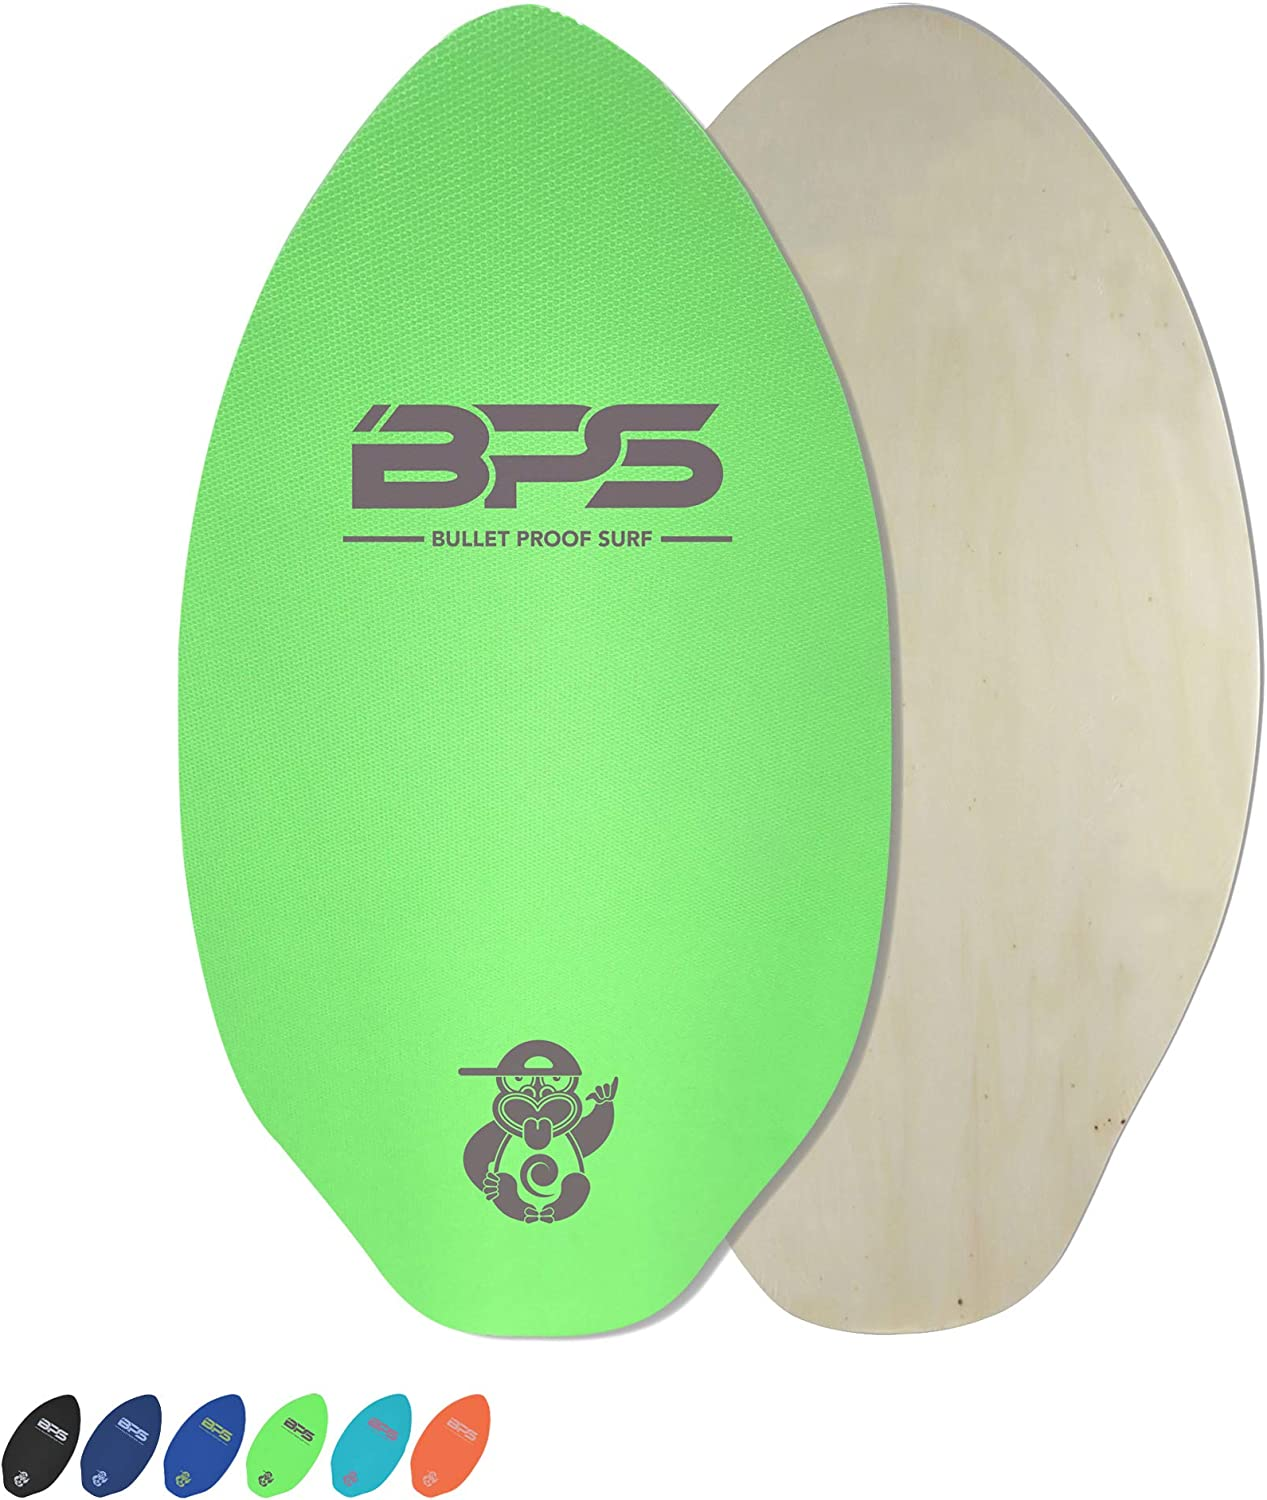 Wooden Skim Board with Grip Pad for Kids and Adults Choose from 3 Sizes and Traction Pad Color BPS Shaka Skimboards with Colored EVA Grip Pad and High Gloss Clear Coat